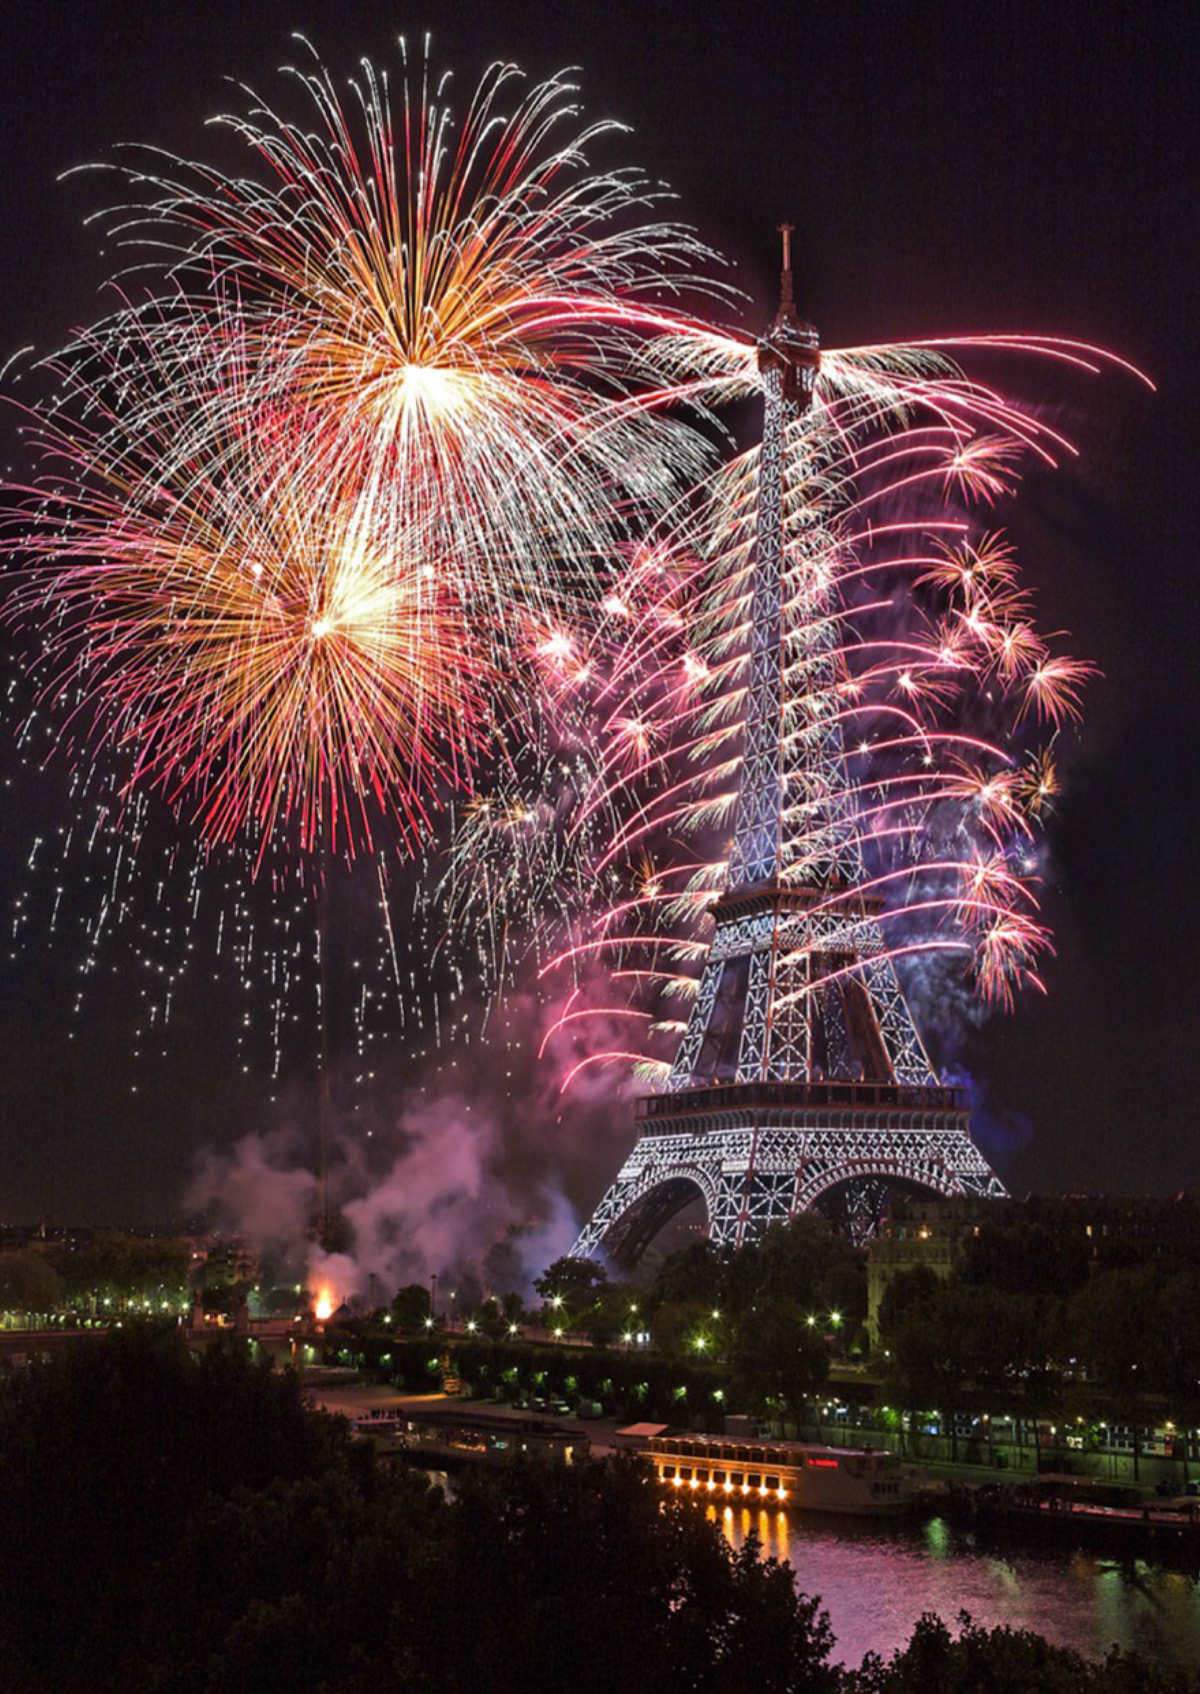 14 juillet 2014 - Tour Eiffel, feu d'artifice - Photo : Maire de Paris